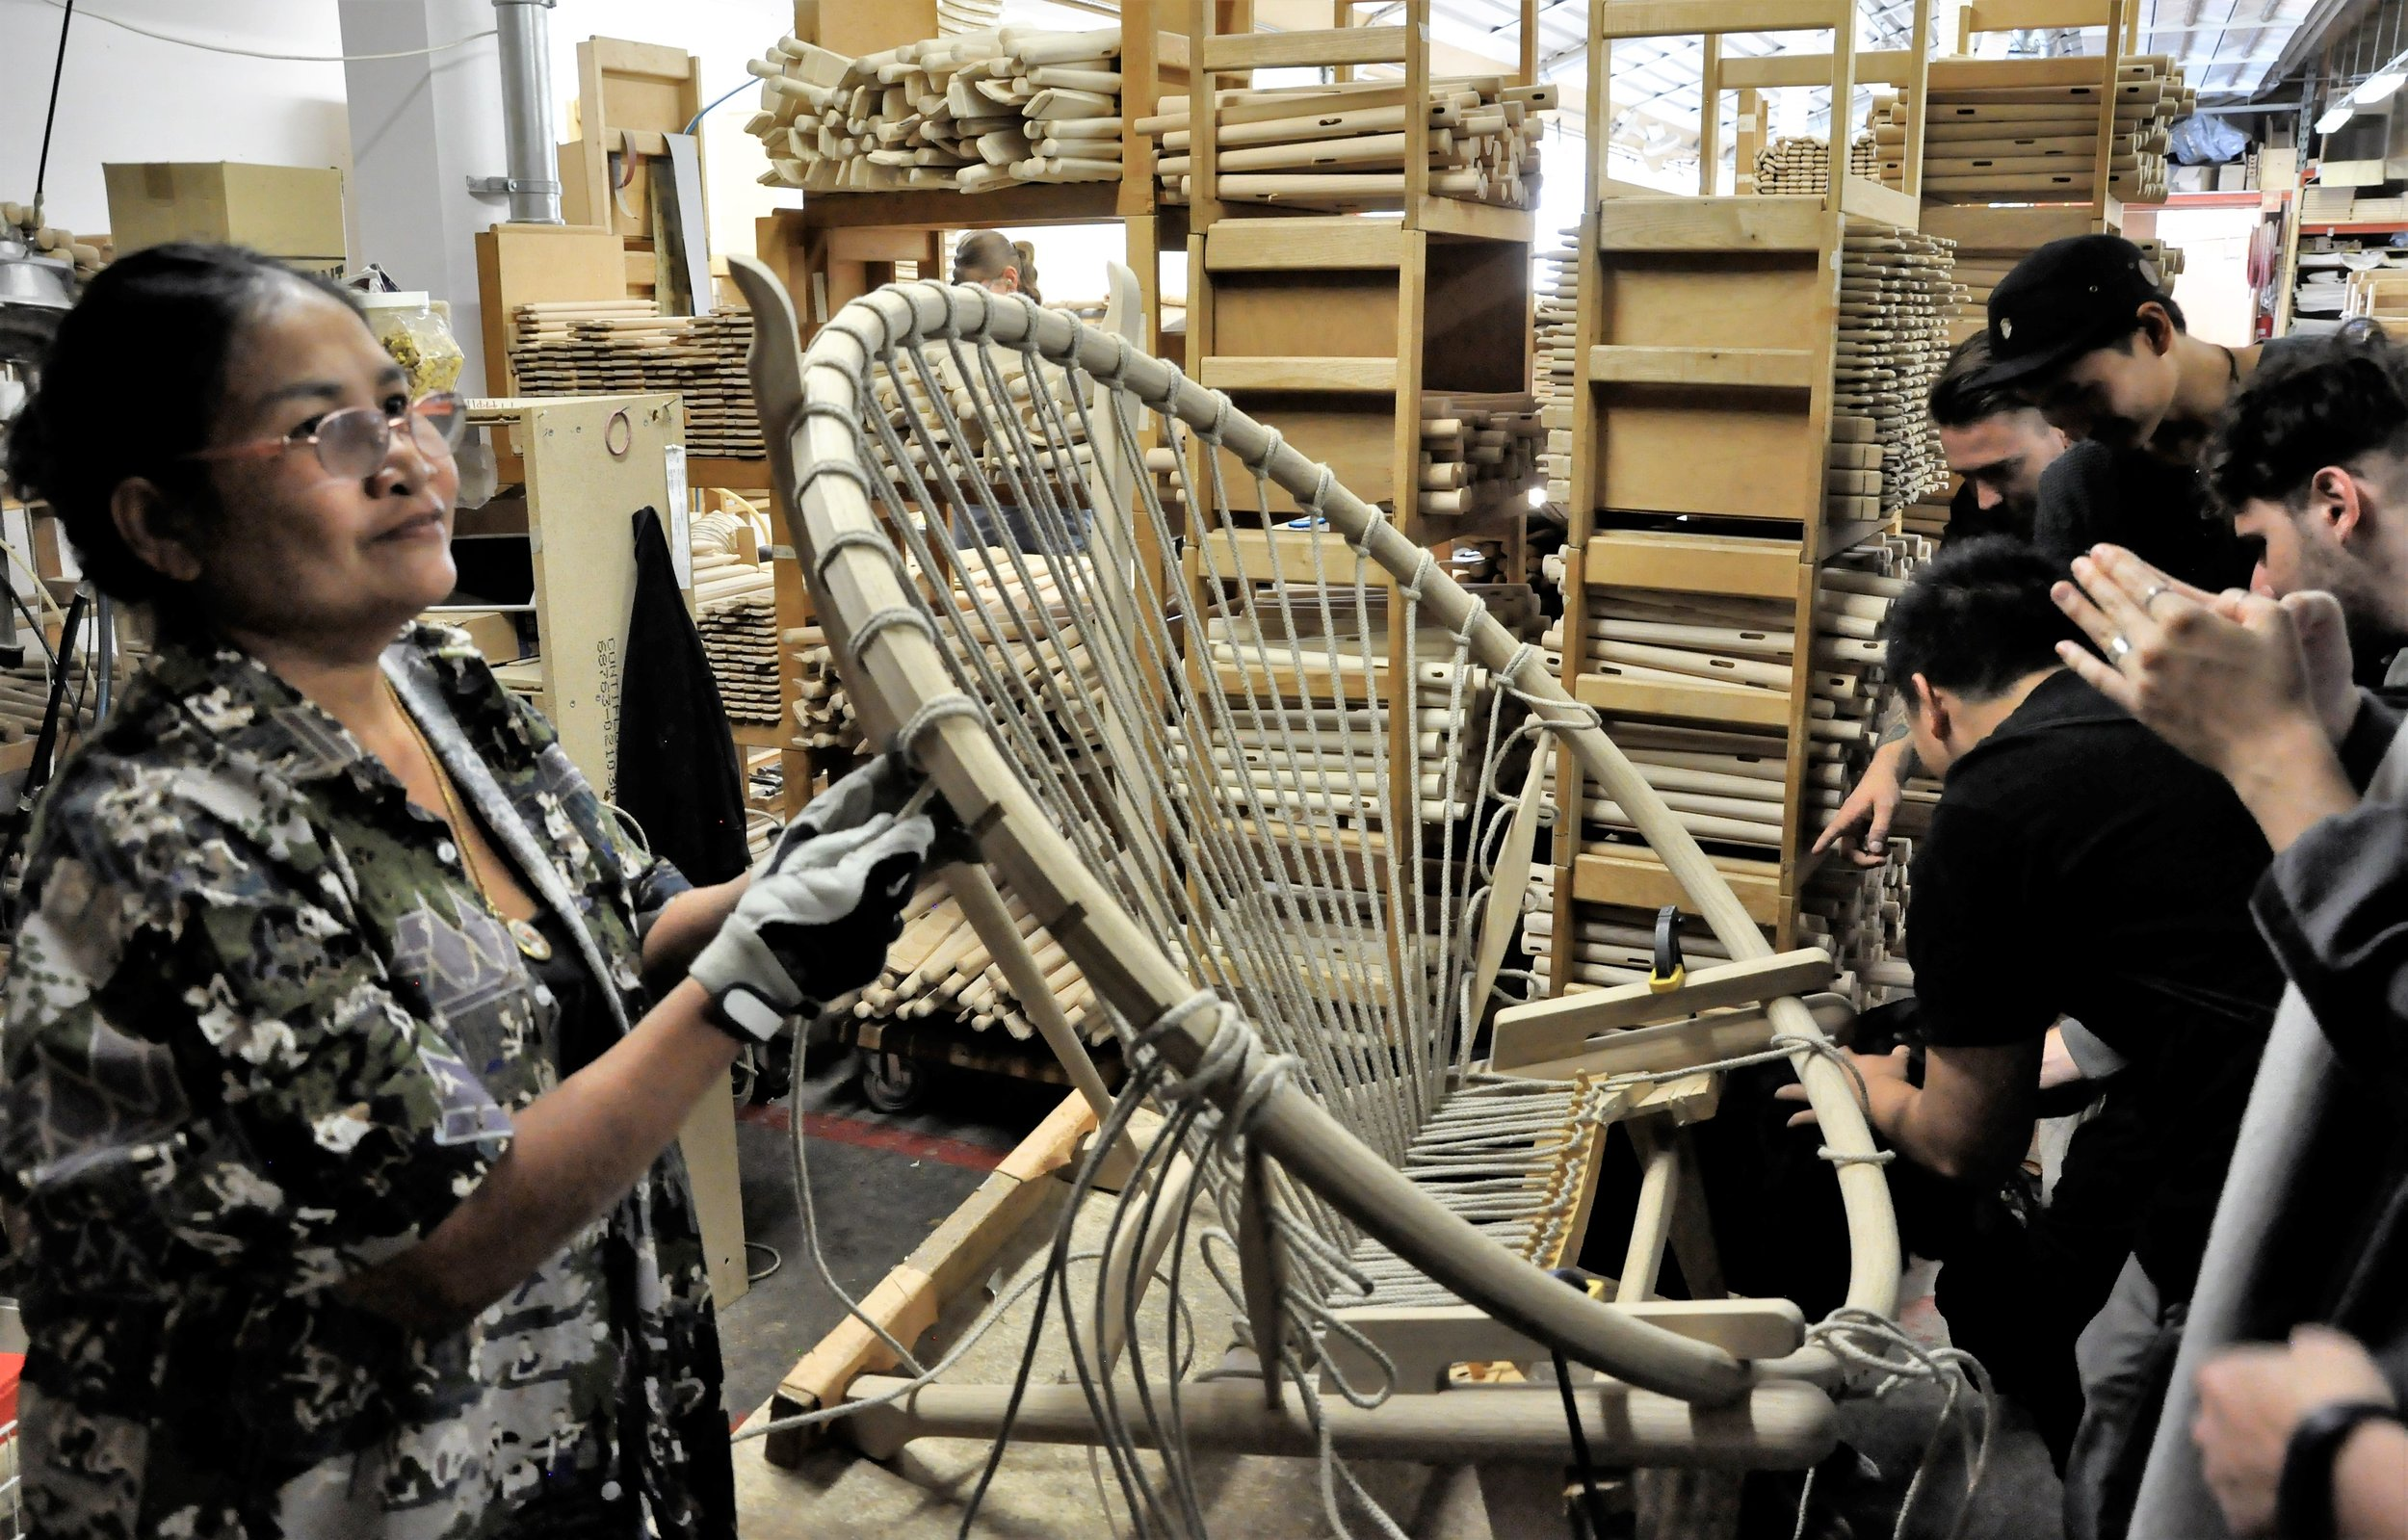 pp ring chair in process.JPG